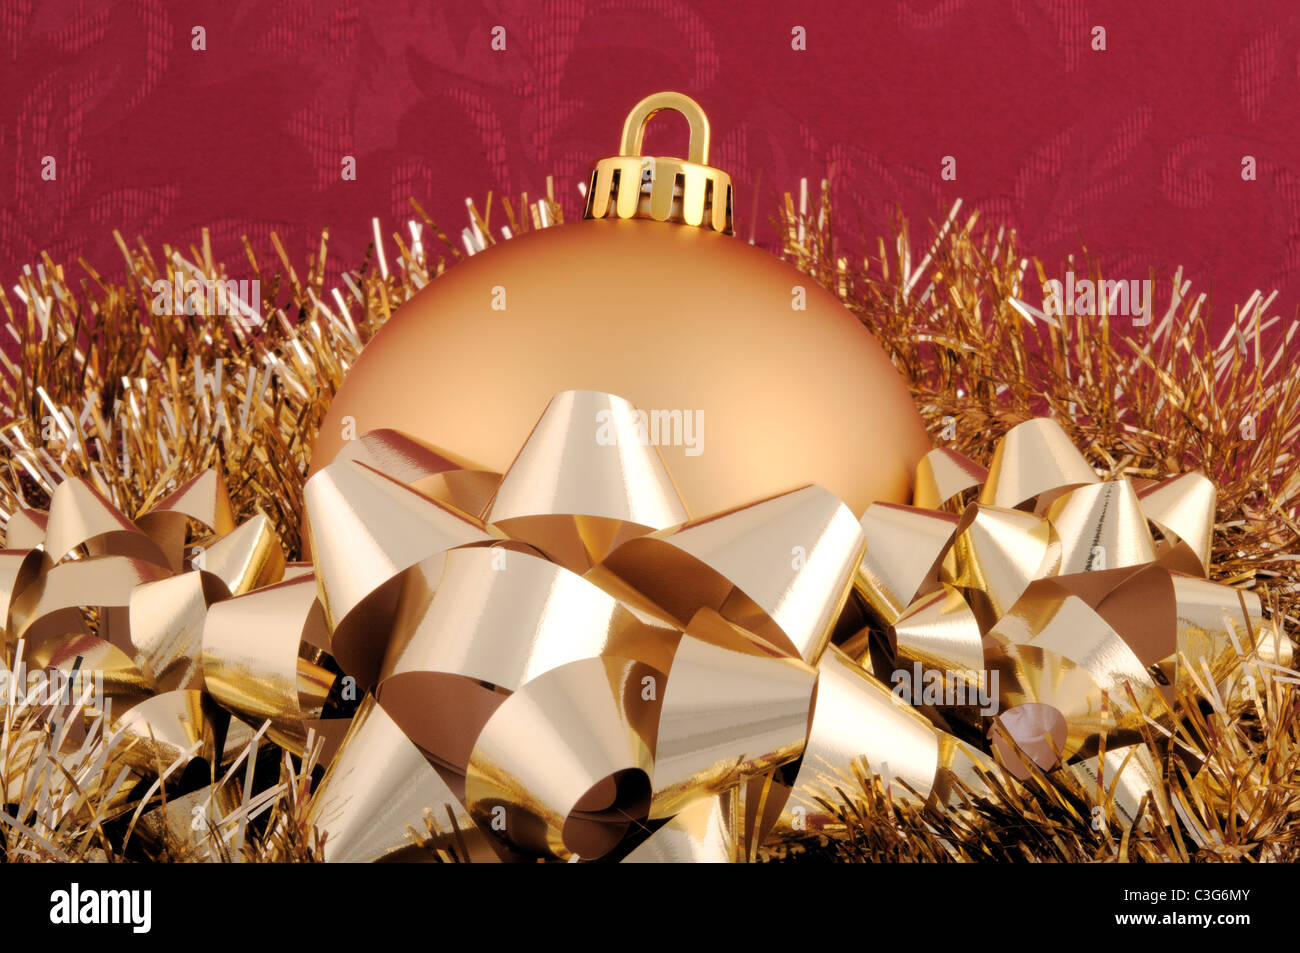 A gold Christmas ornament surrounded by garland and bows. - Stock Image